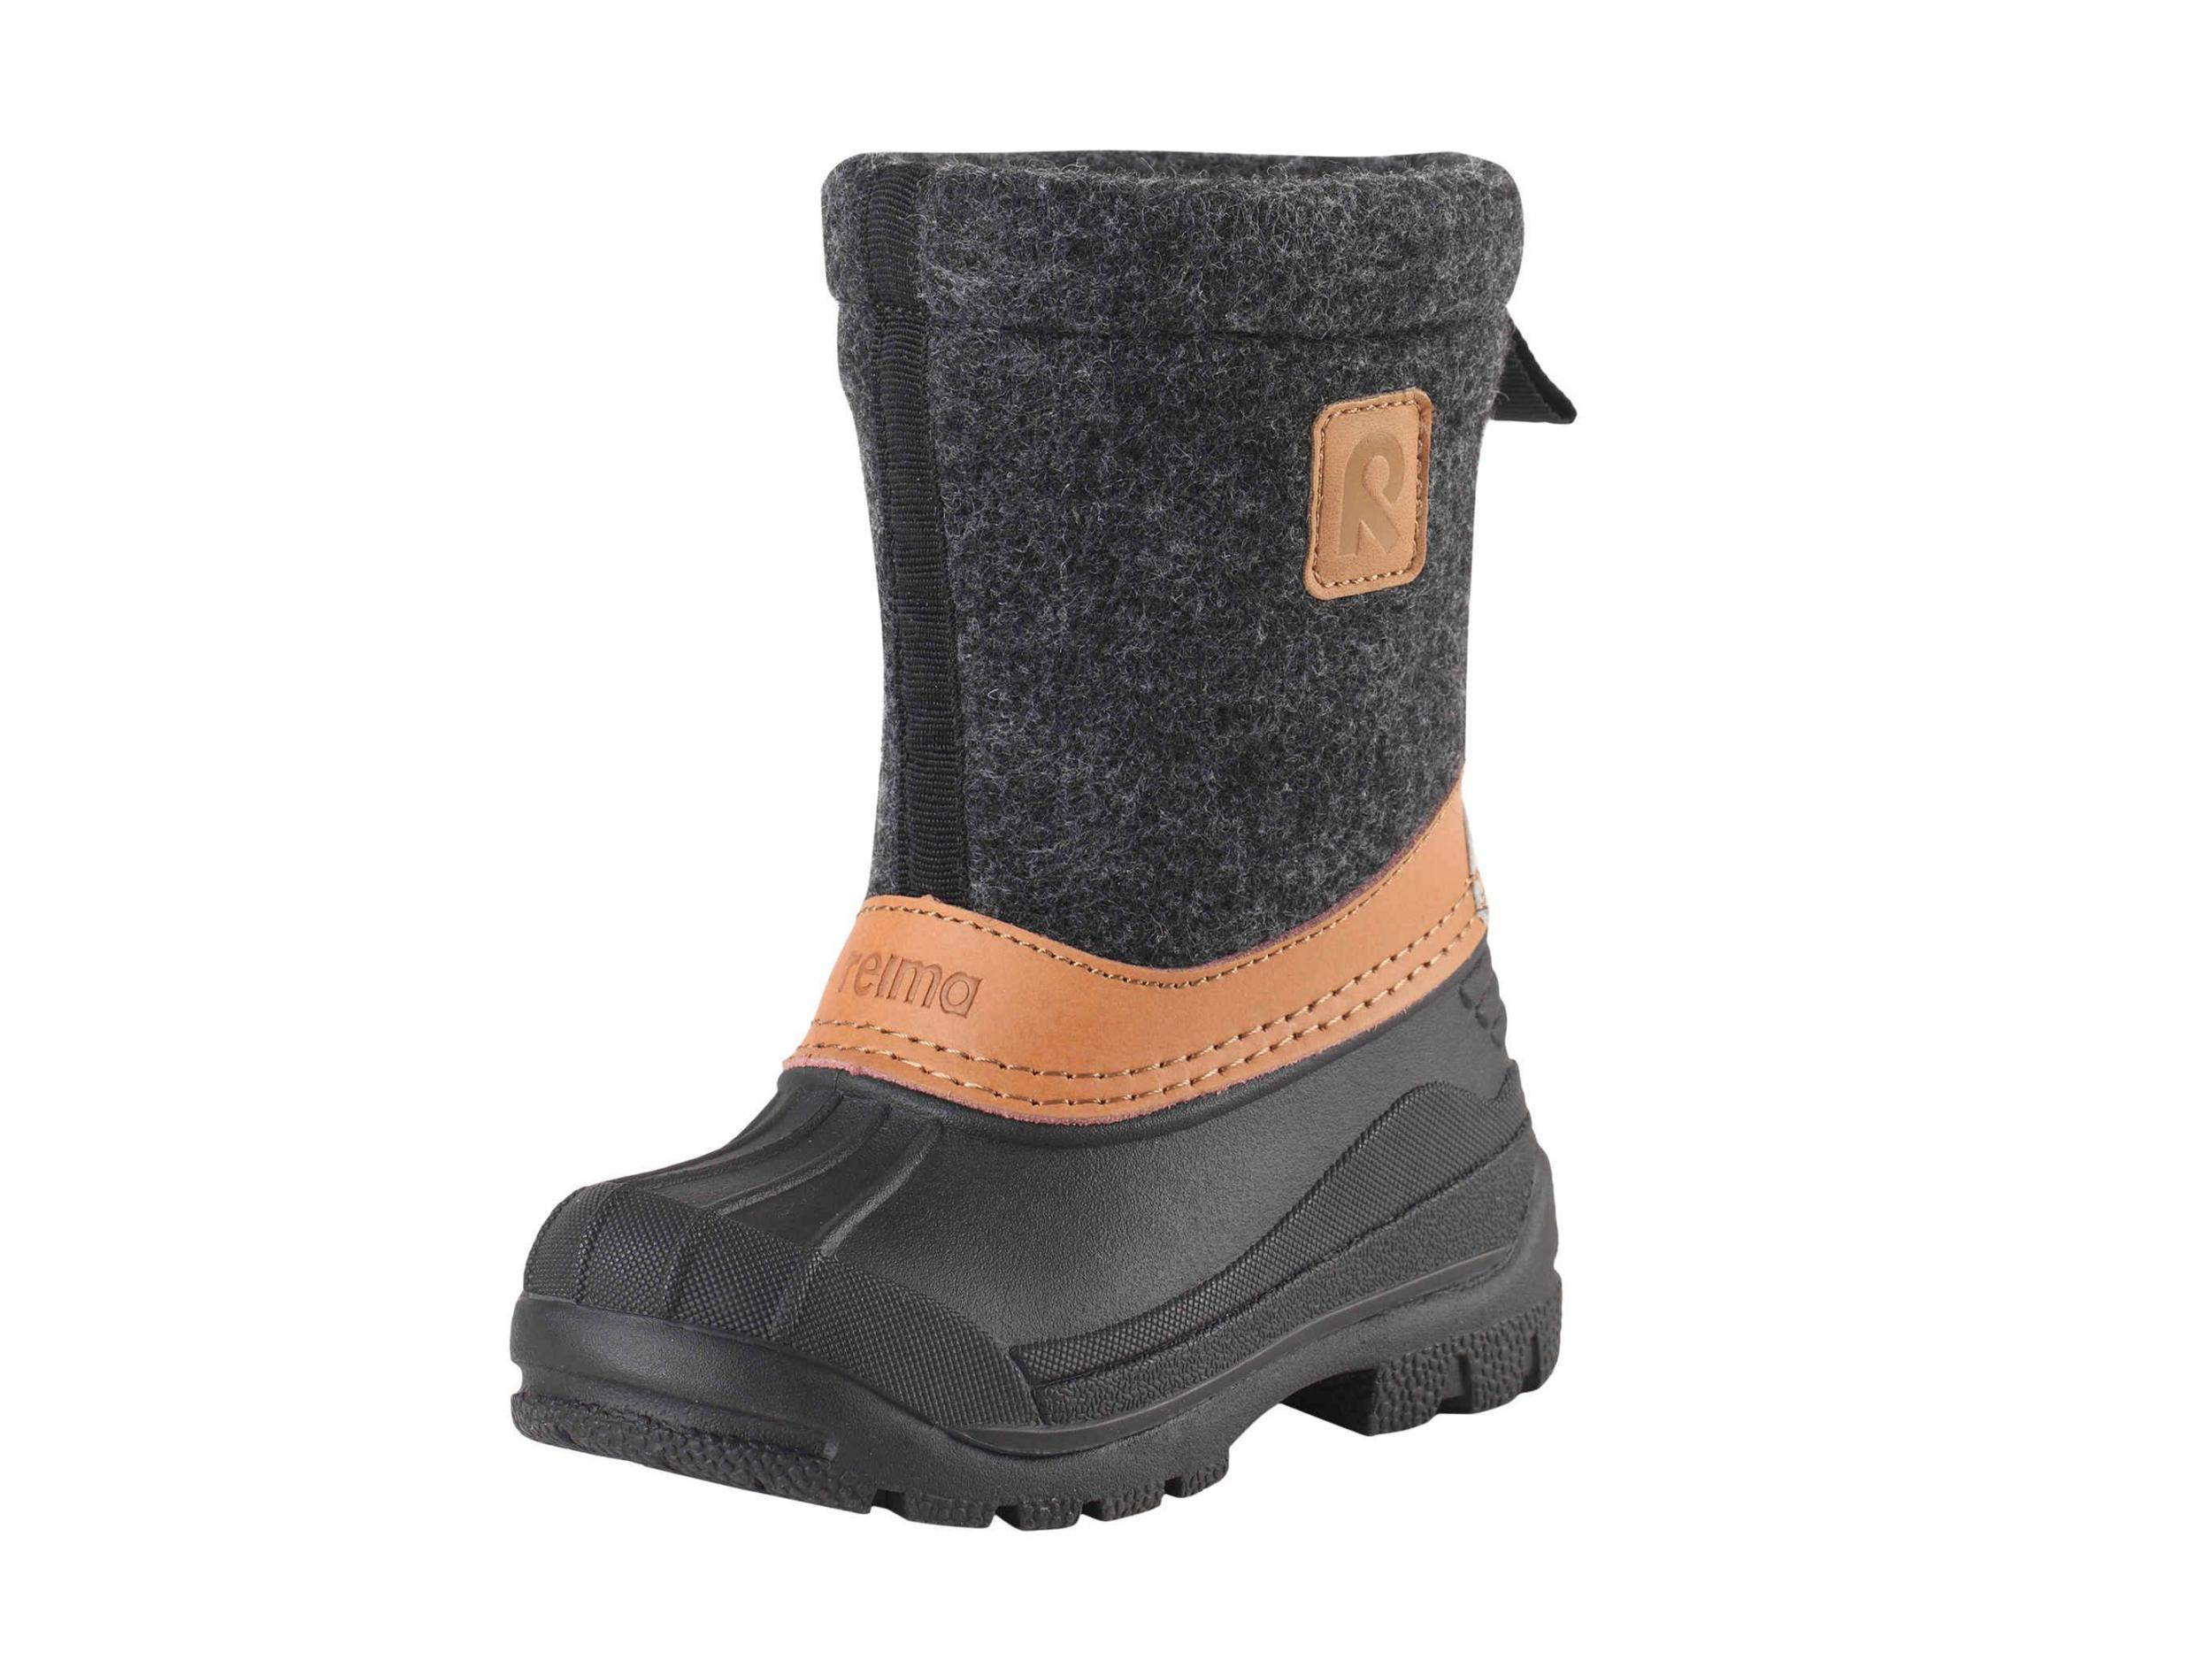 f429b947ff0 Best kids' hiking boots that are comfortable, sturdy and long-wearing